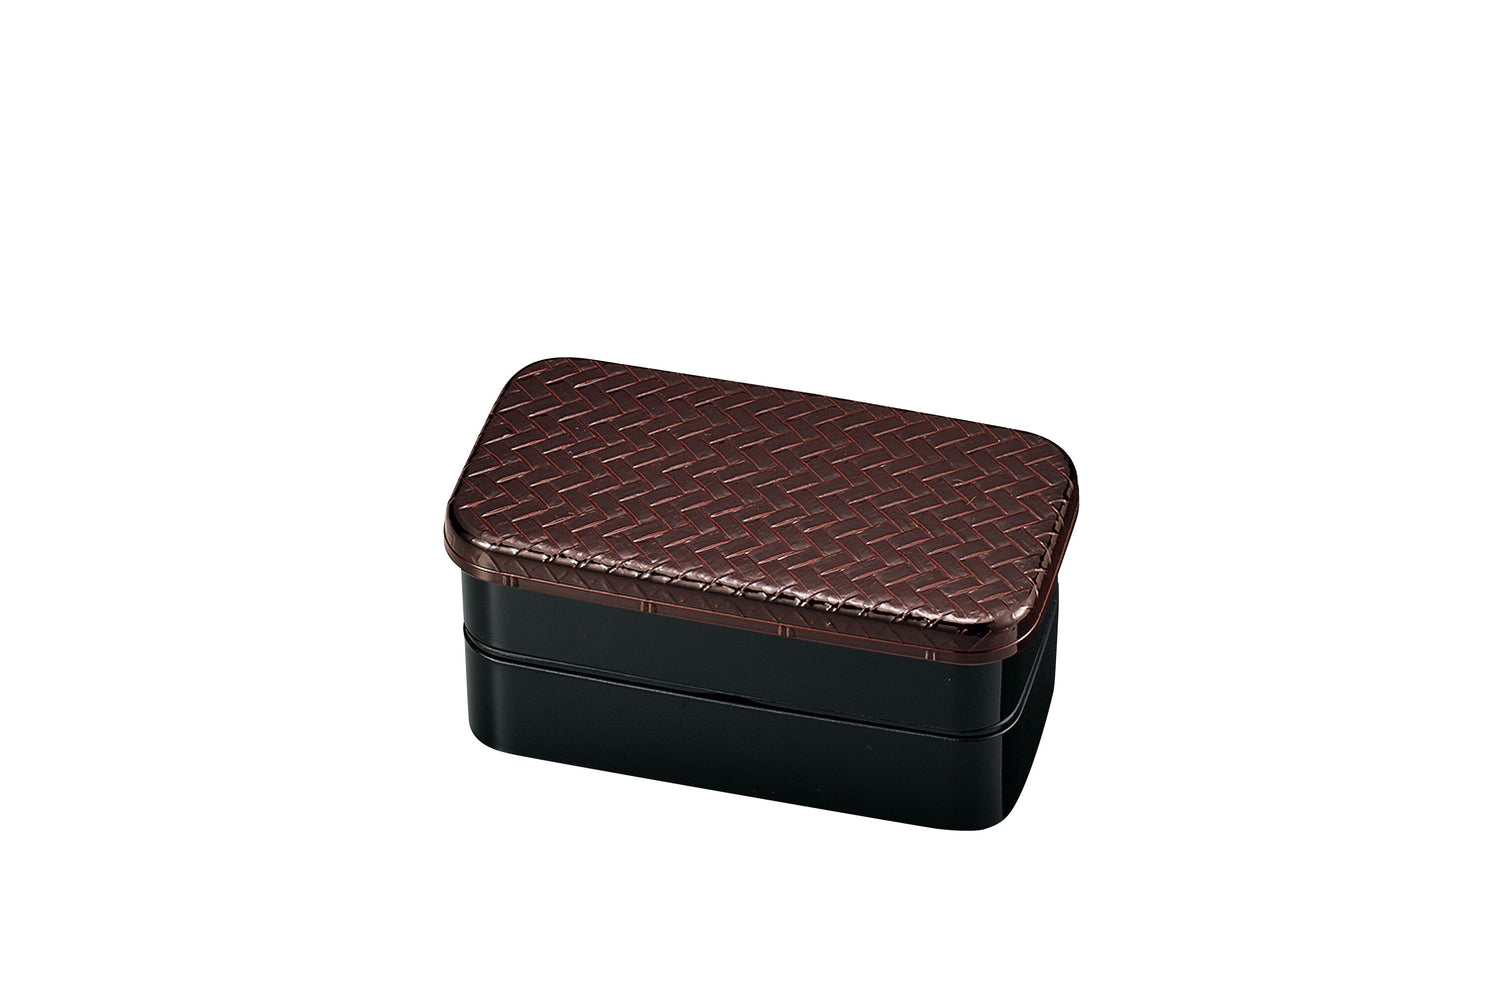 Ajiro Dark Brown Bento Box | Small by Hakoya - Bento&co Japanese Bento Lunch Boxes and Kitchenware Specialists